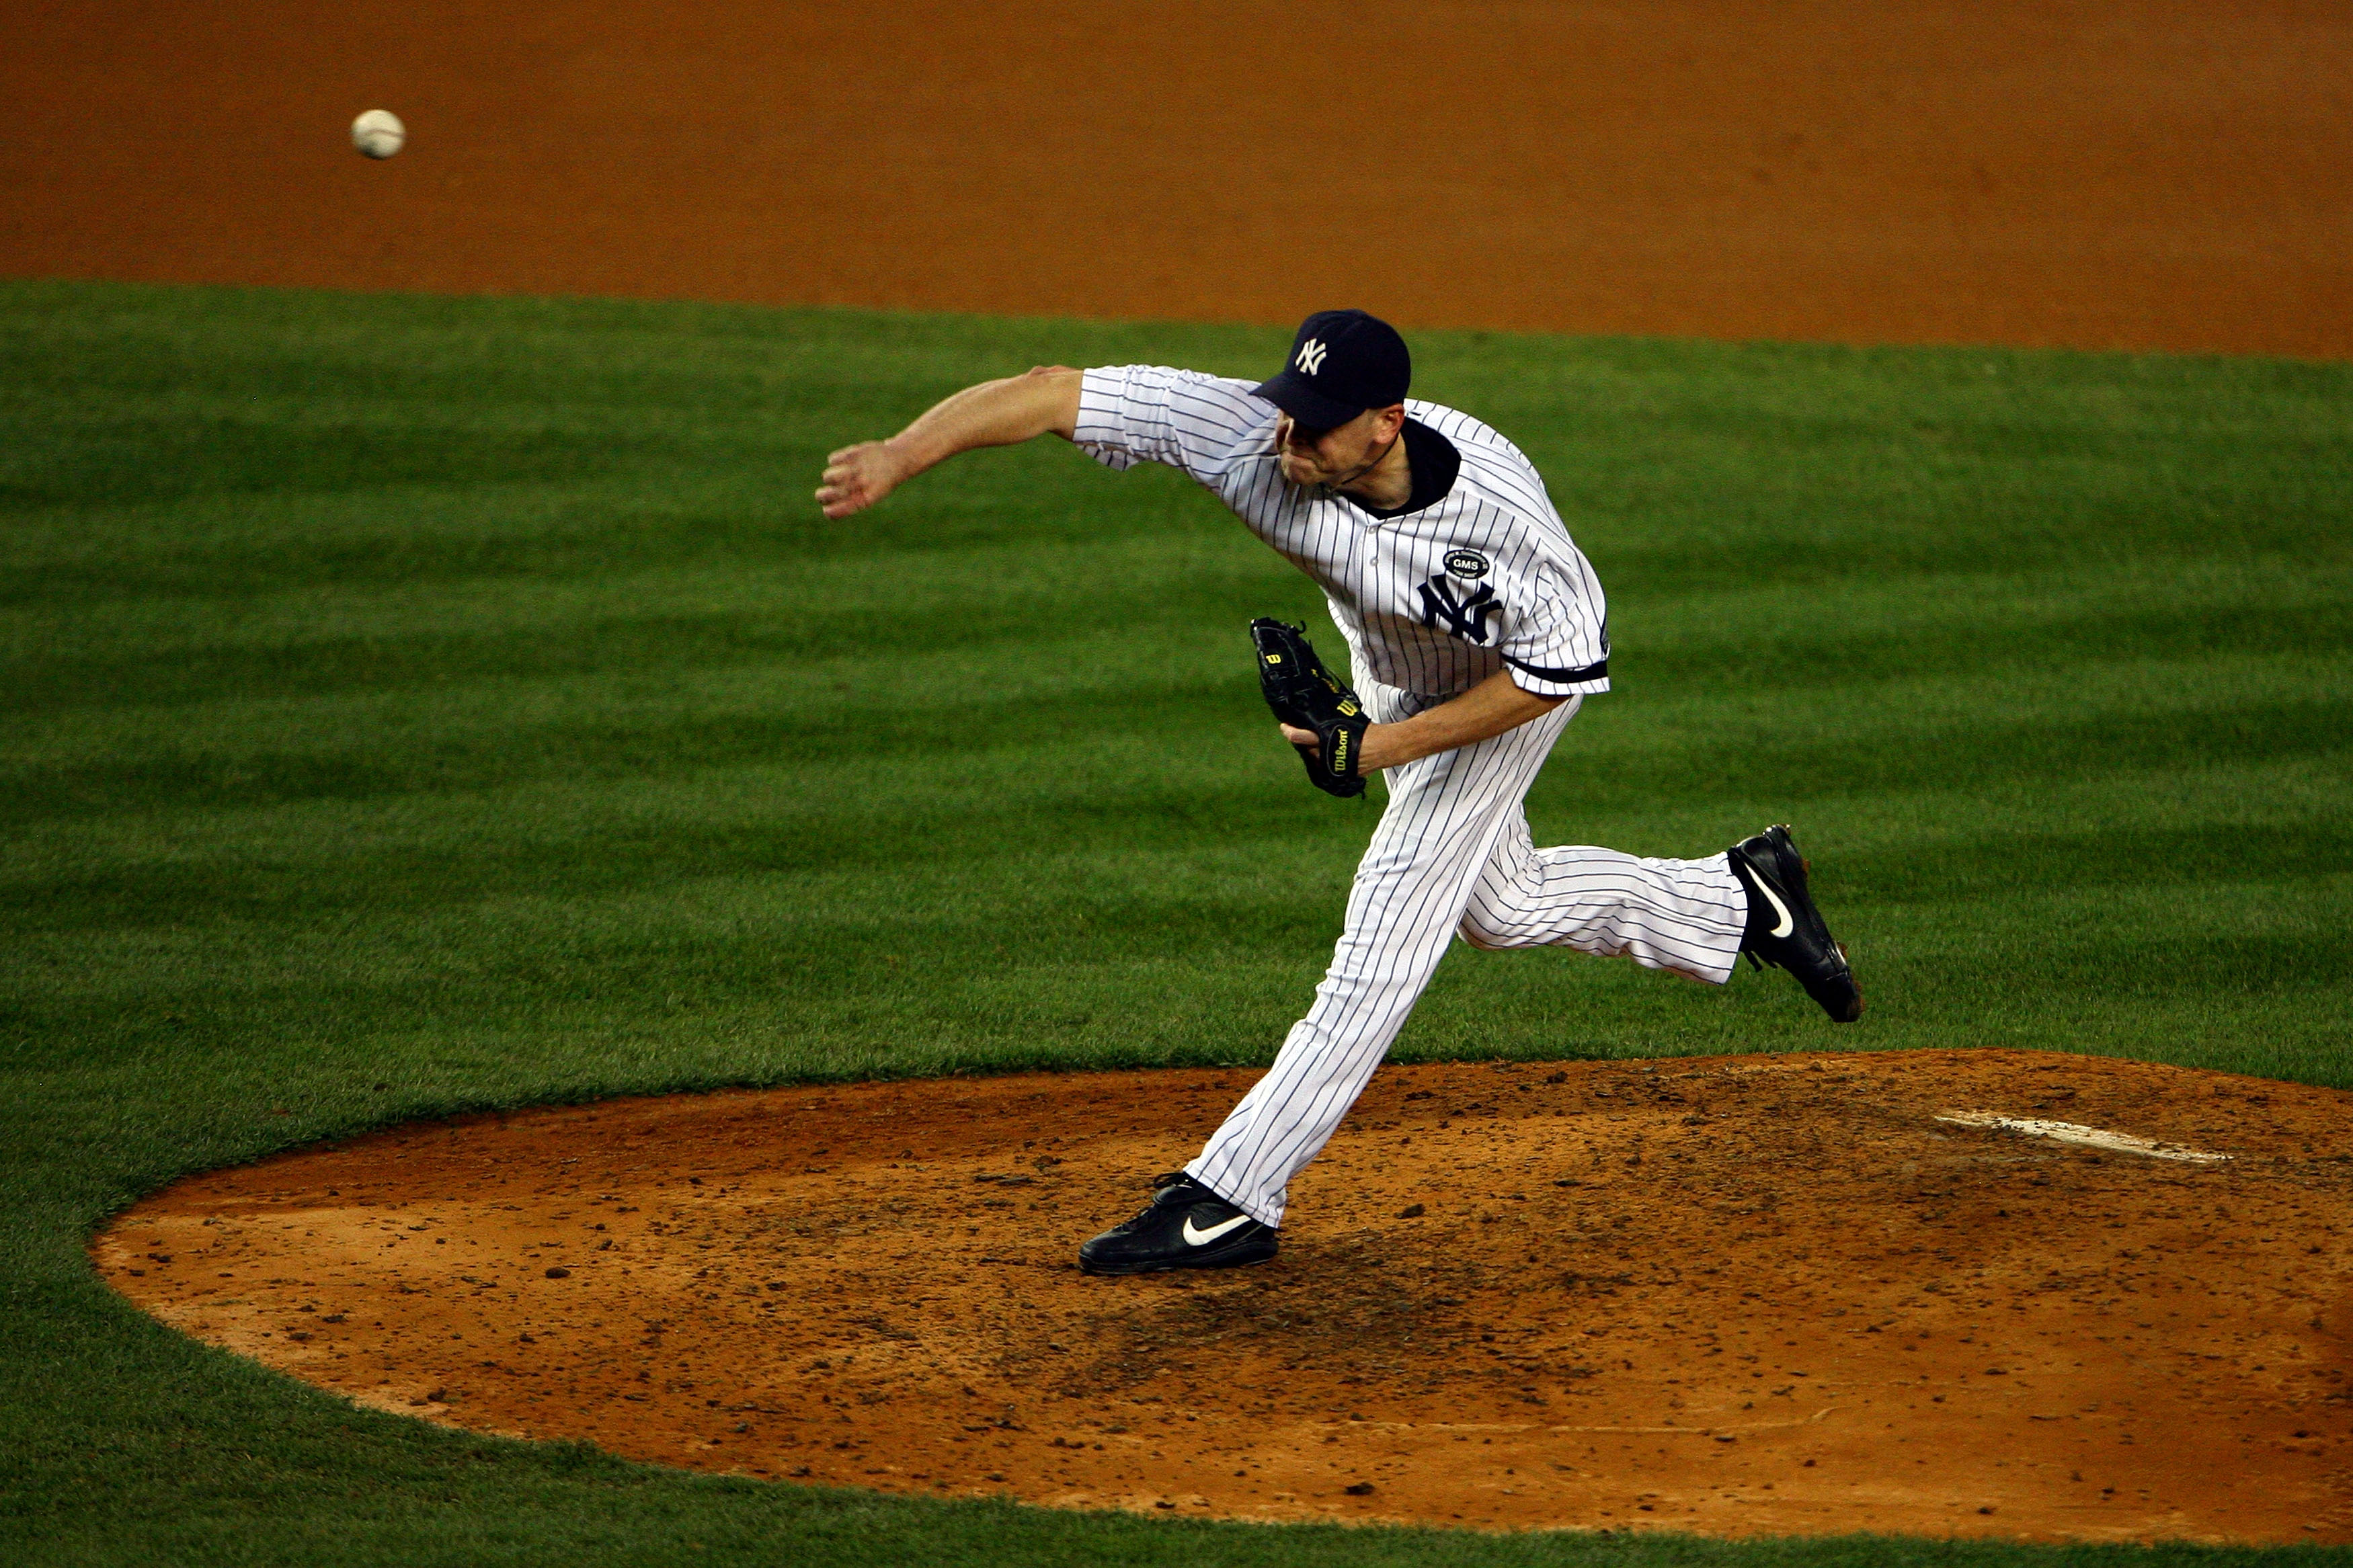 Wood throws hard and has a great breaking ball, which, could help the Yankees in 2011.